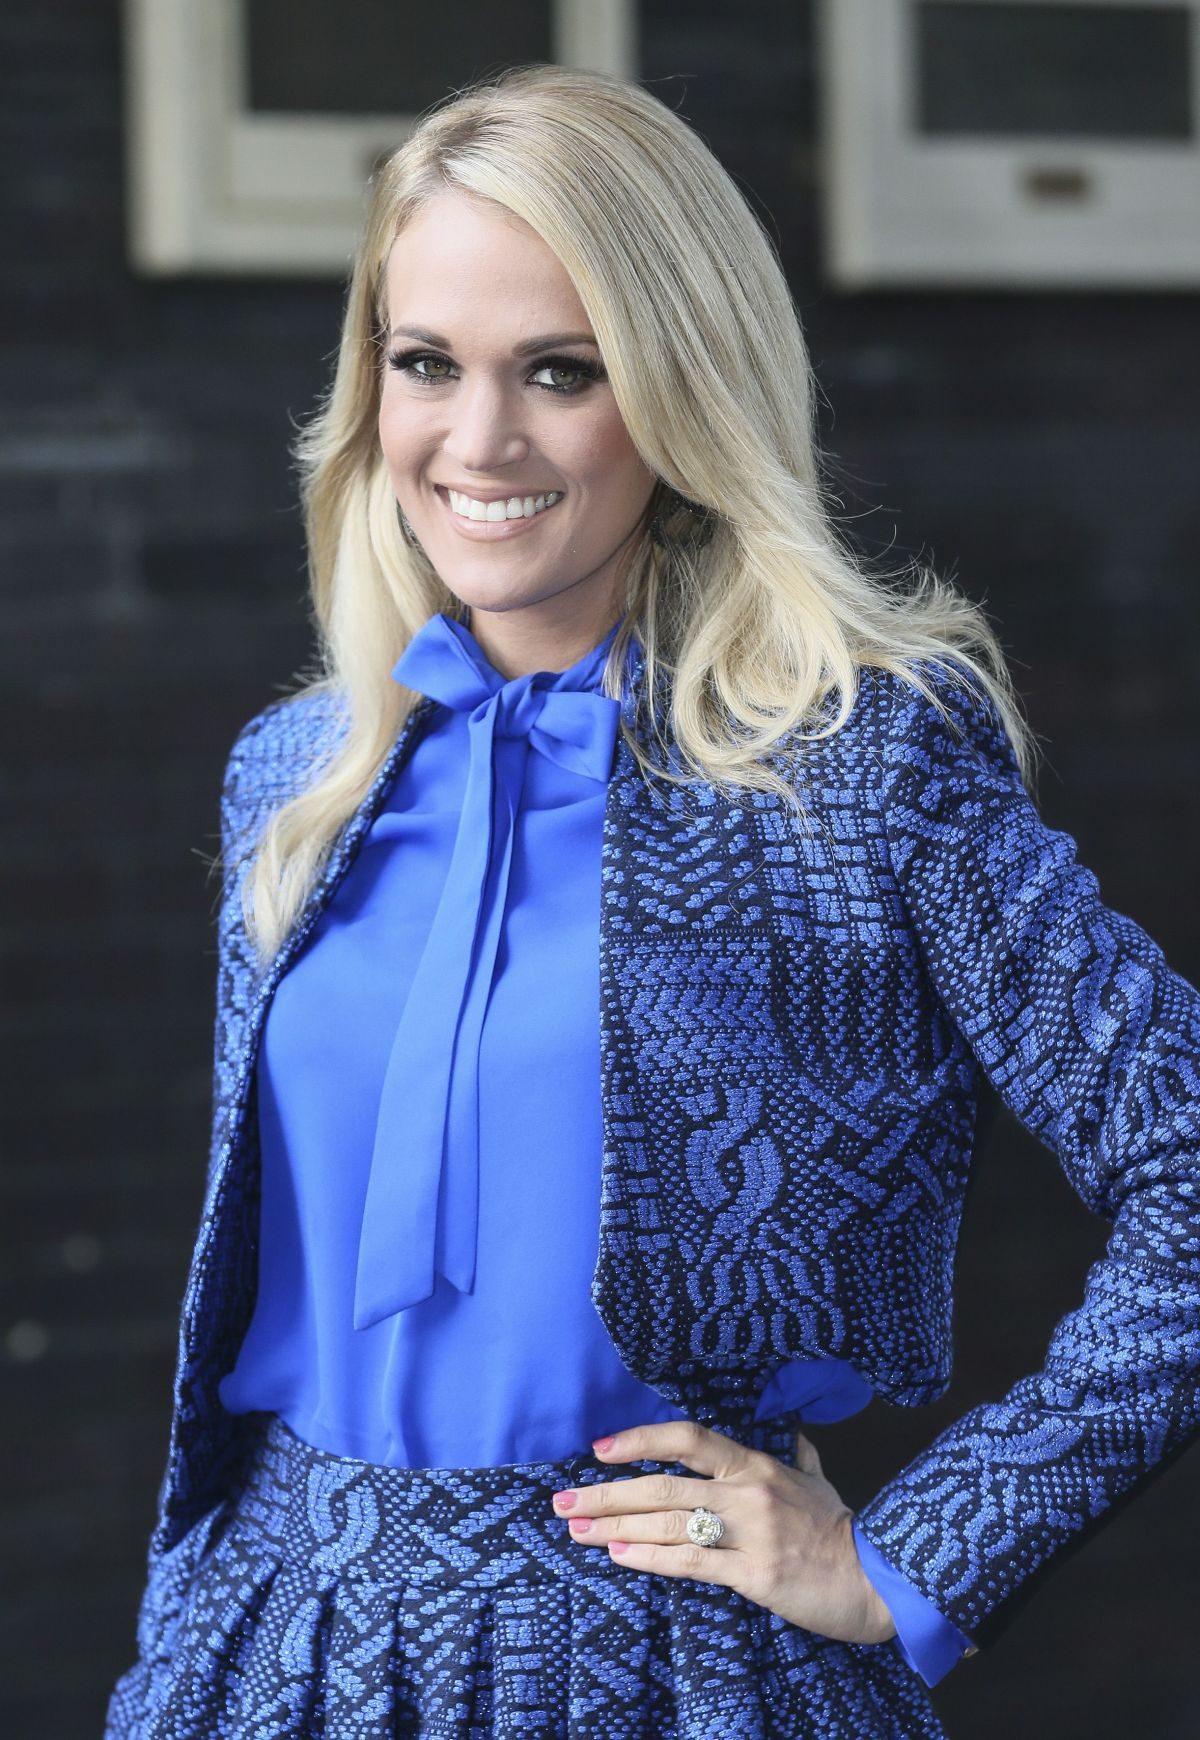 carrie underwood - photo #1